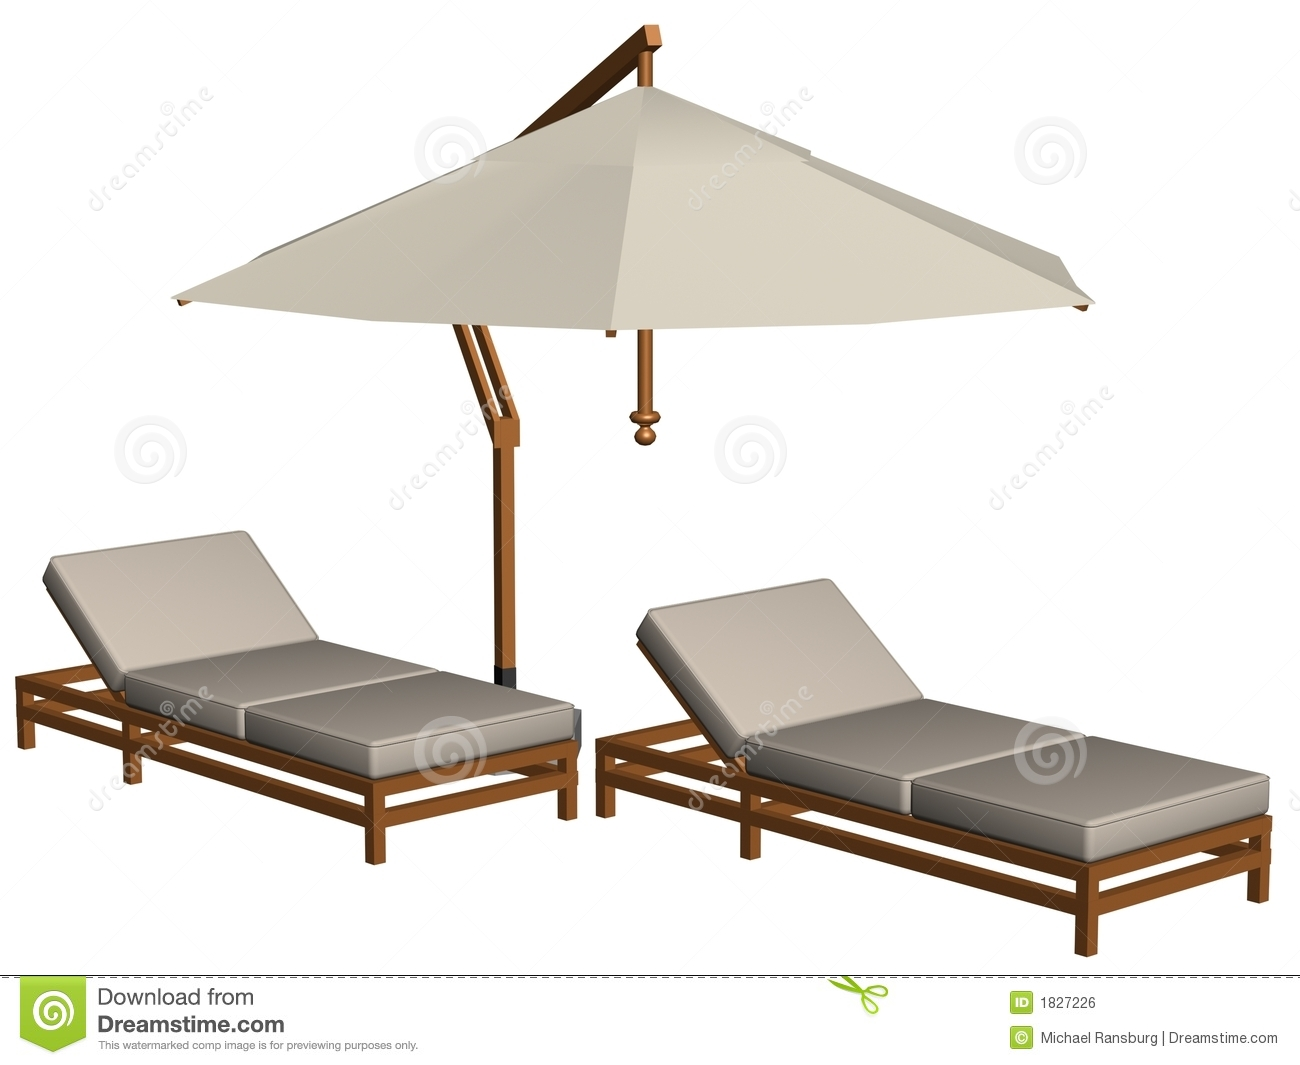 Pool Furniture Royalty Free Stock Image - Image: 1827226